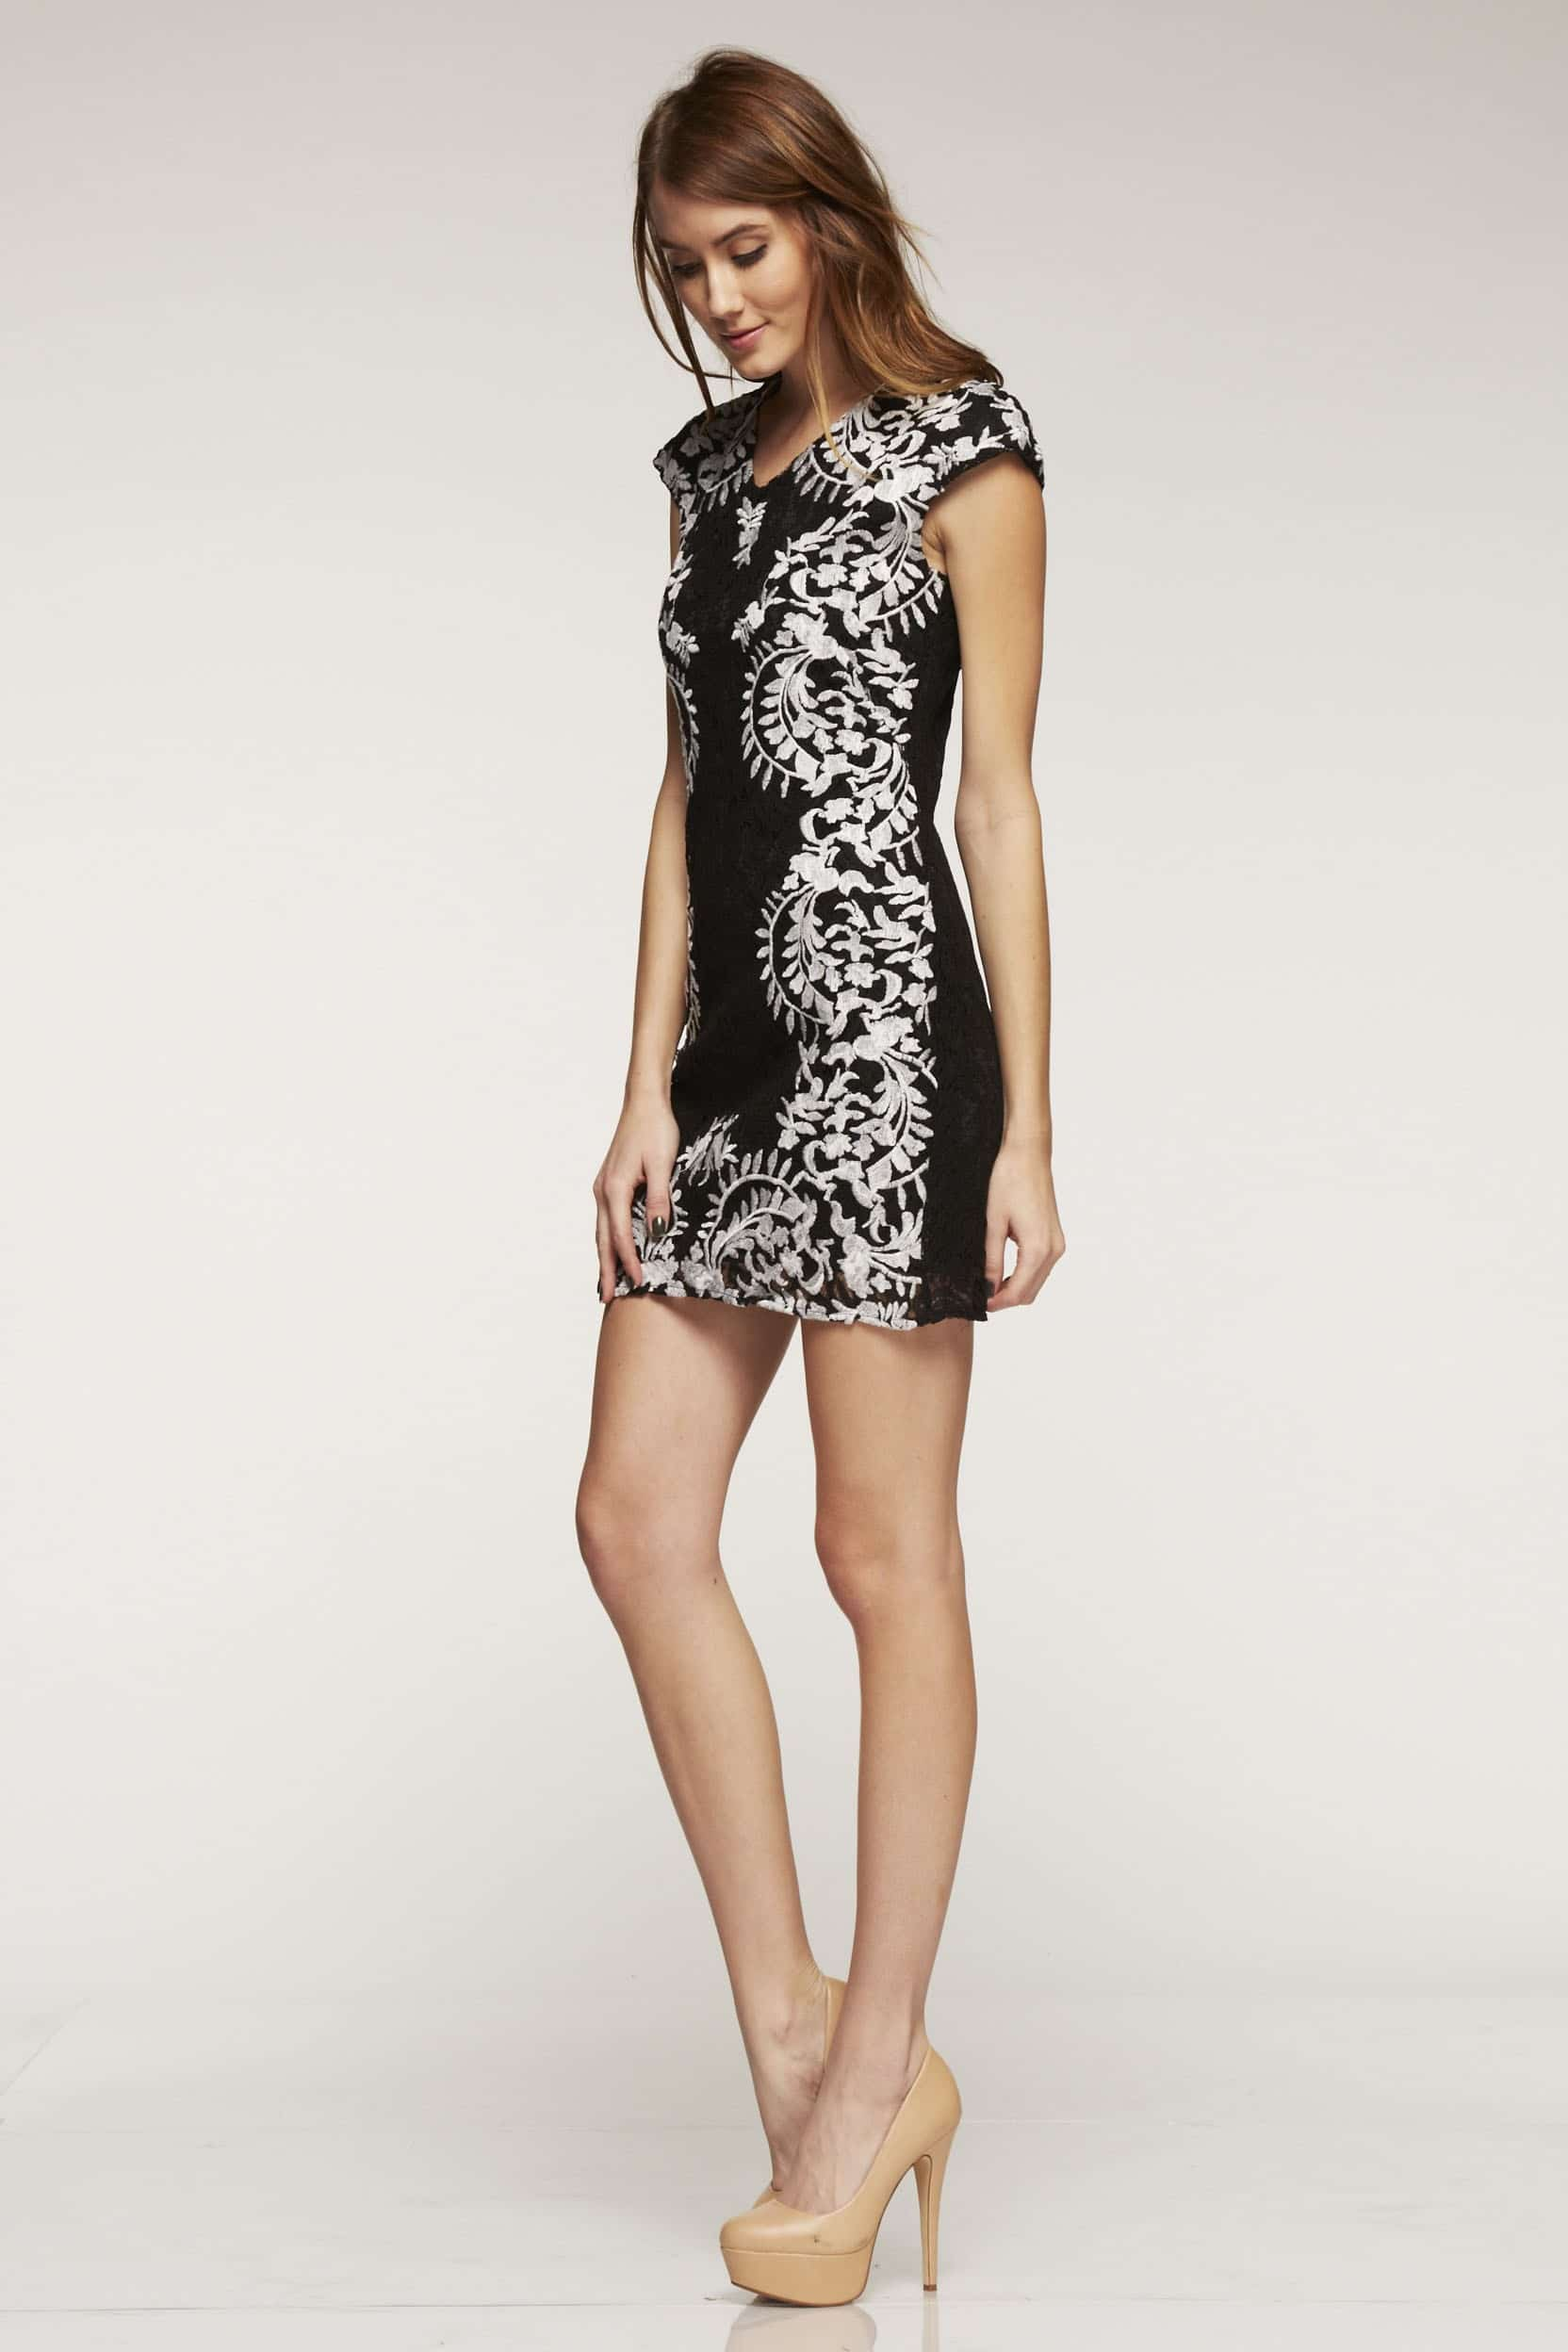 Chanel Inspired lace Shift Dress in Black & White